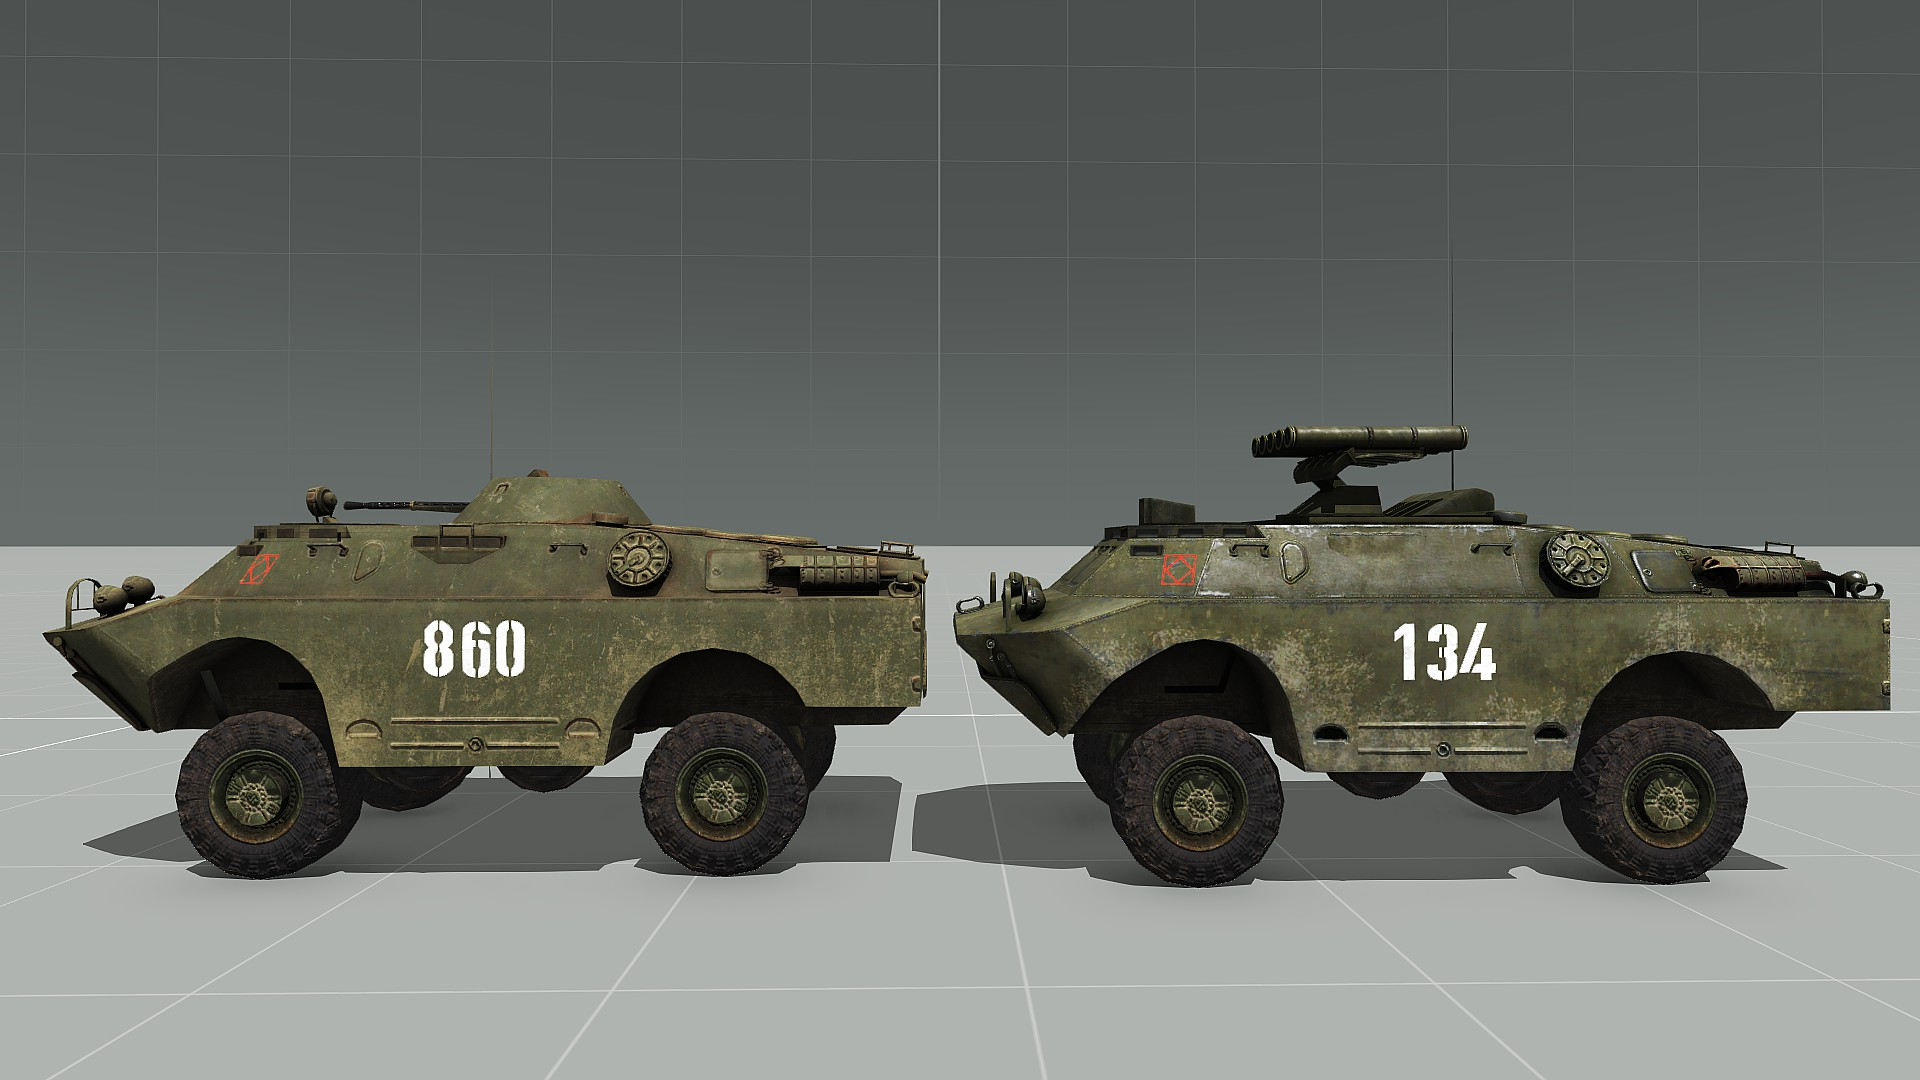 steam community guide apm rhs afrf vehicle identification guide